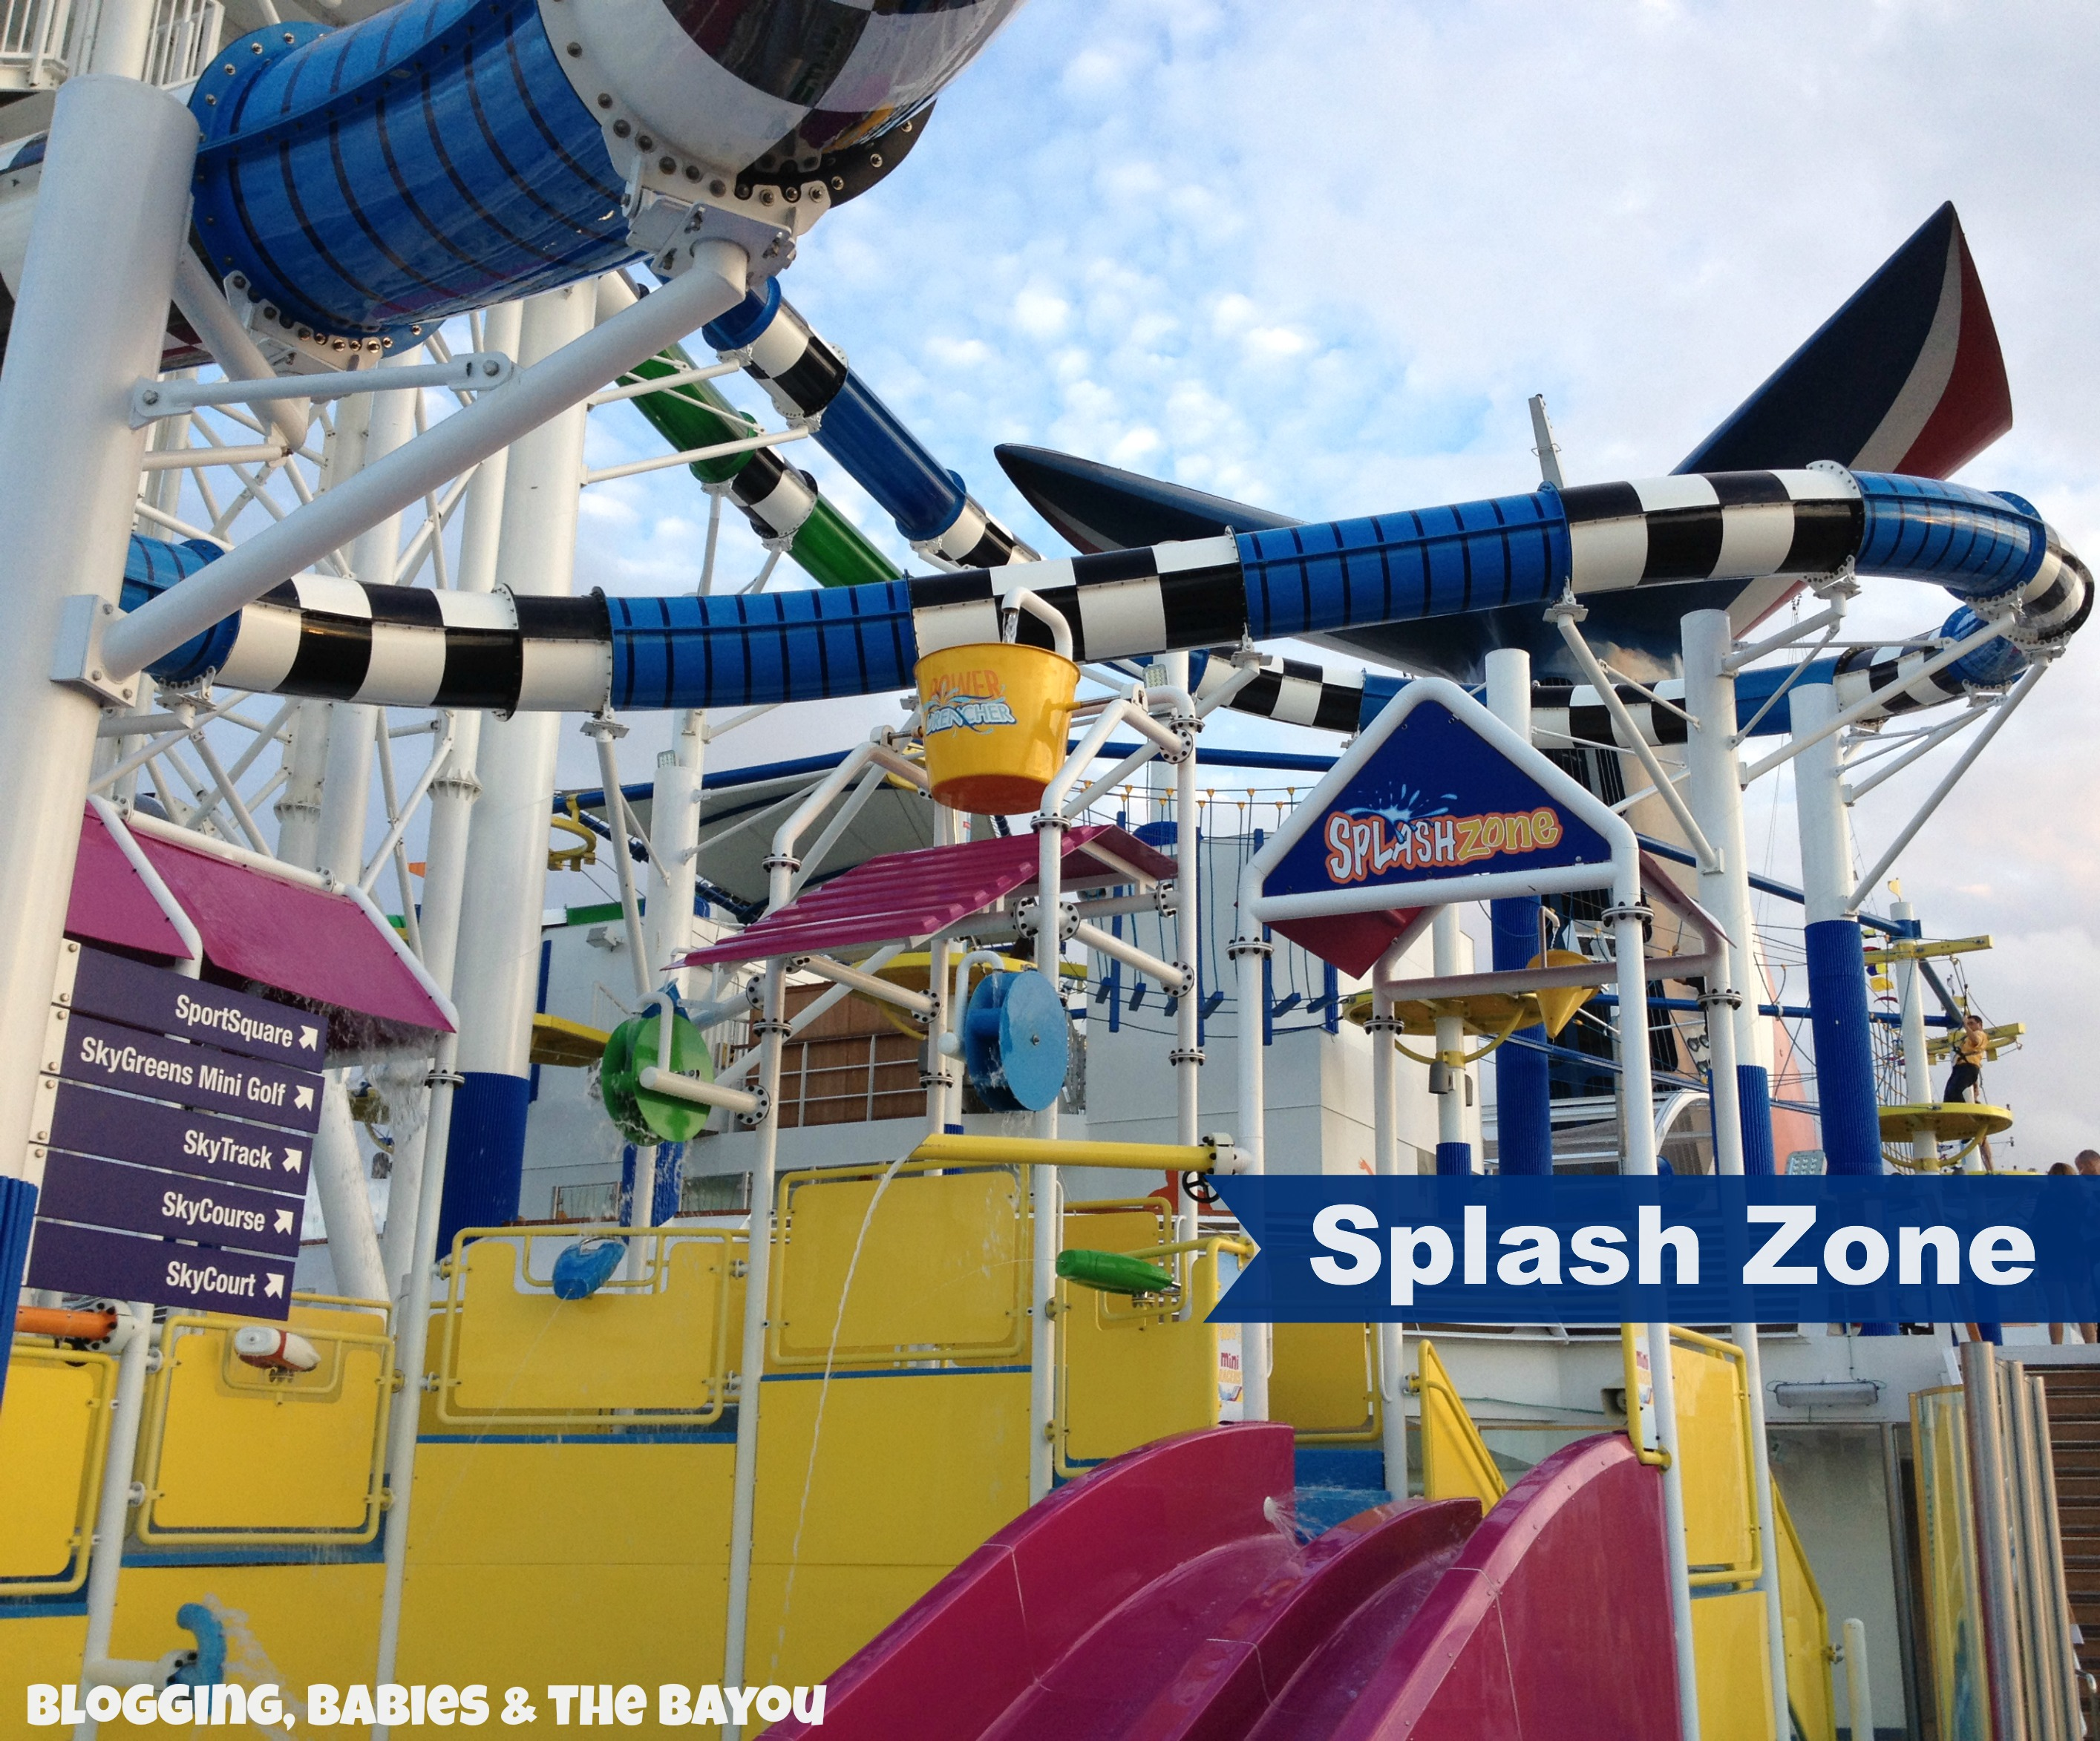 Carnival Cruise Sunshine Kids Area - Splash Zone